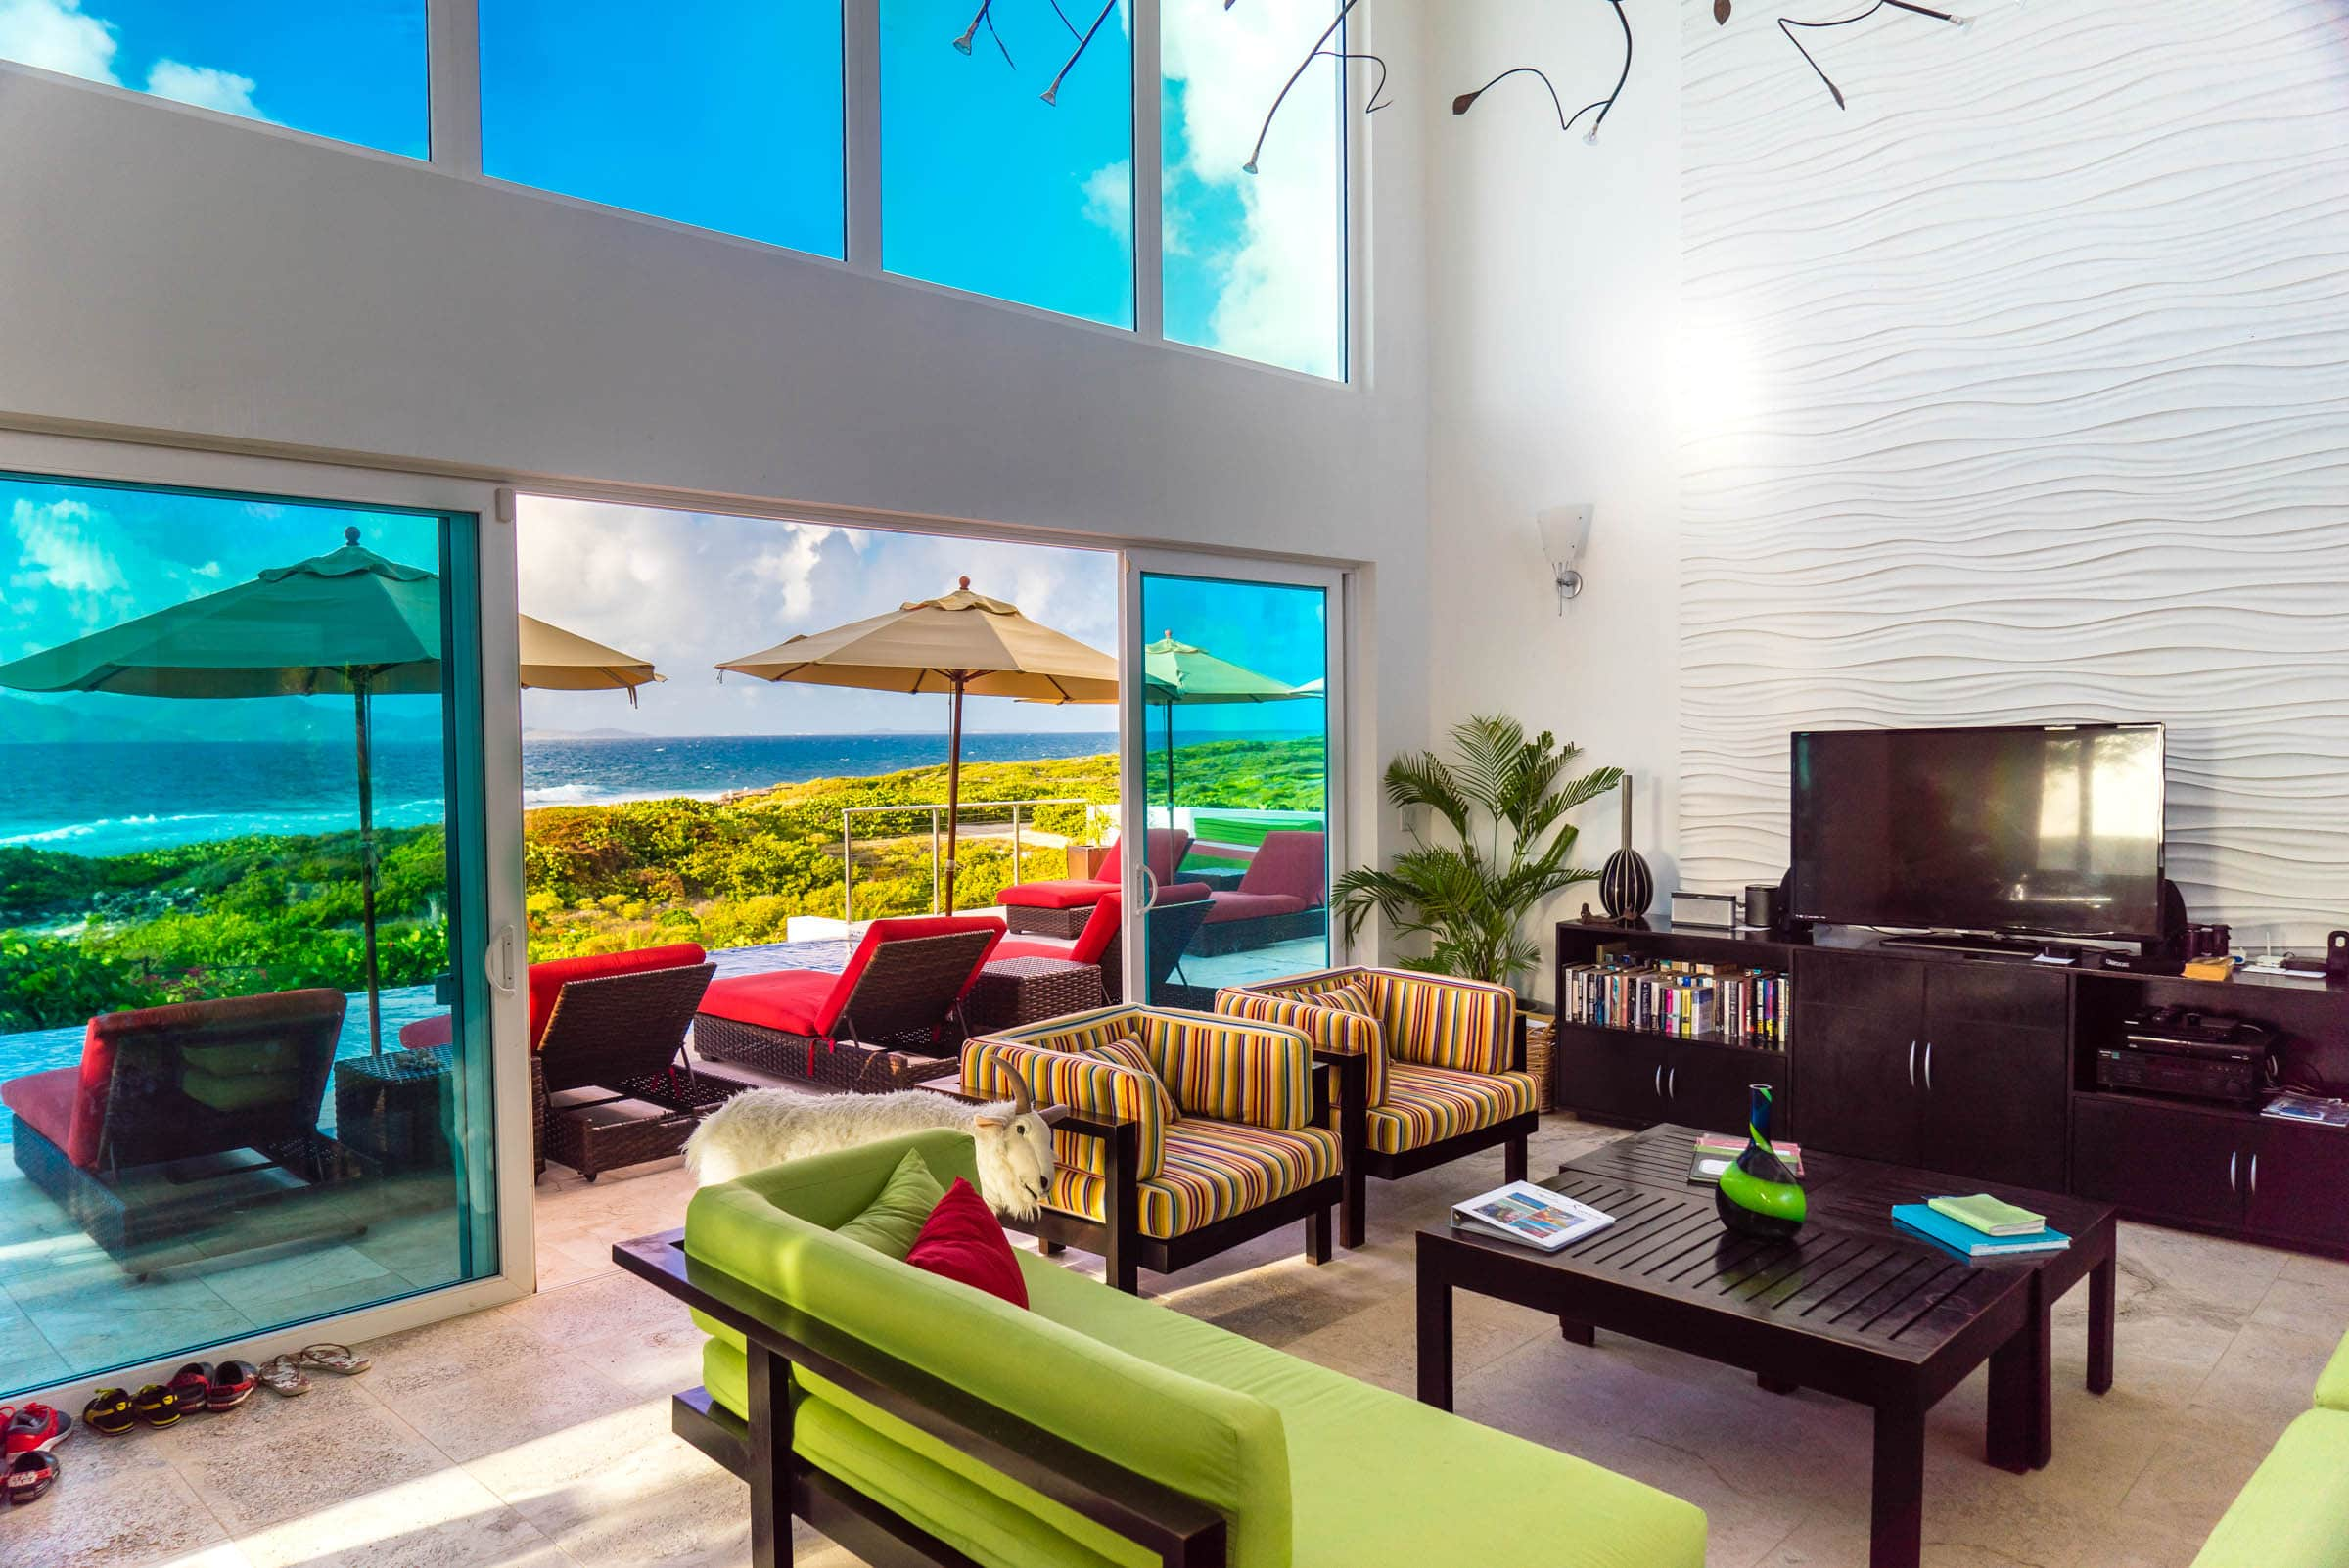 The main living area is a spacious two-story area made more perfect when the doors are opened to welcome the sea breeze.